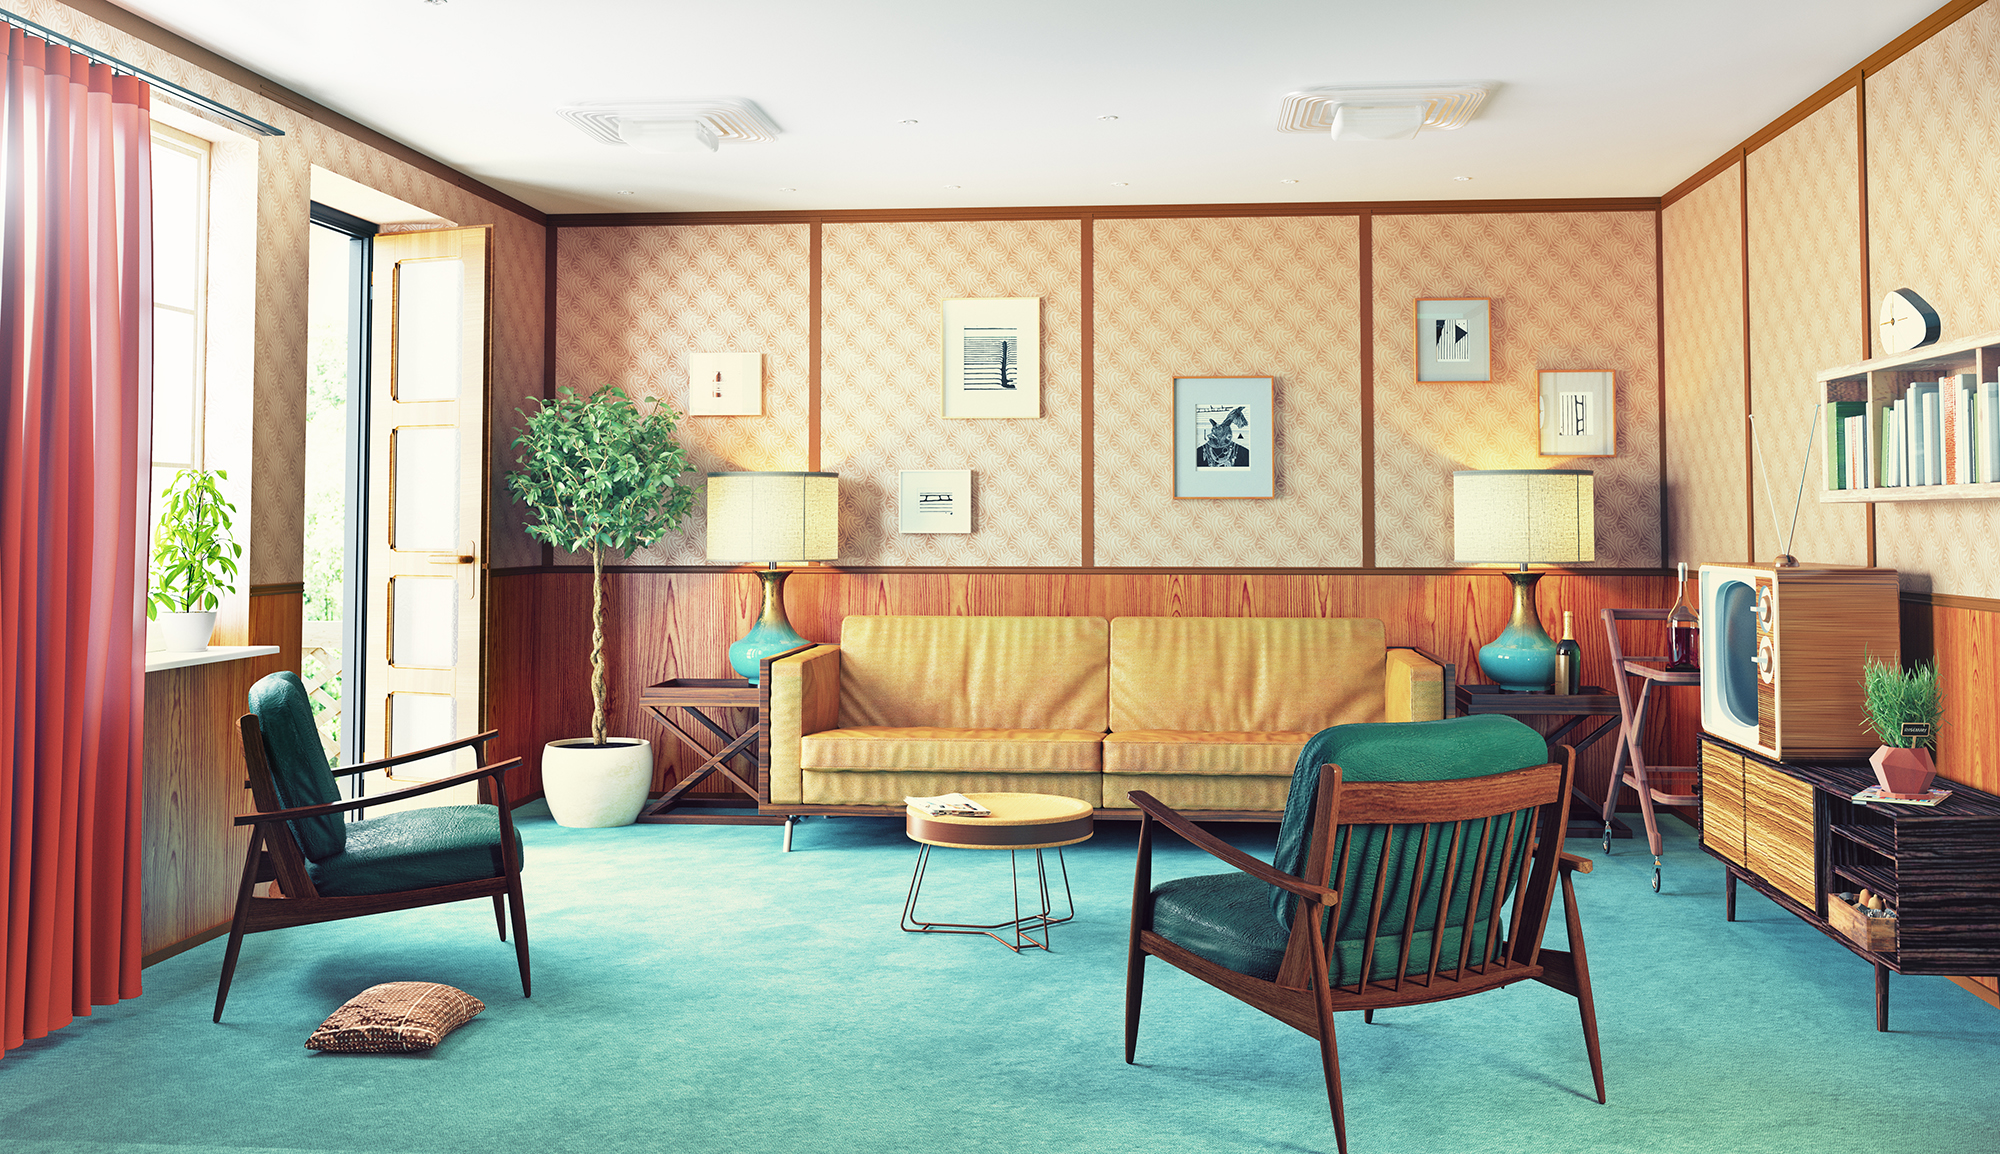 Home decor through the decades part 1 the 70s for 70s apartment design